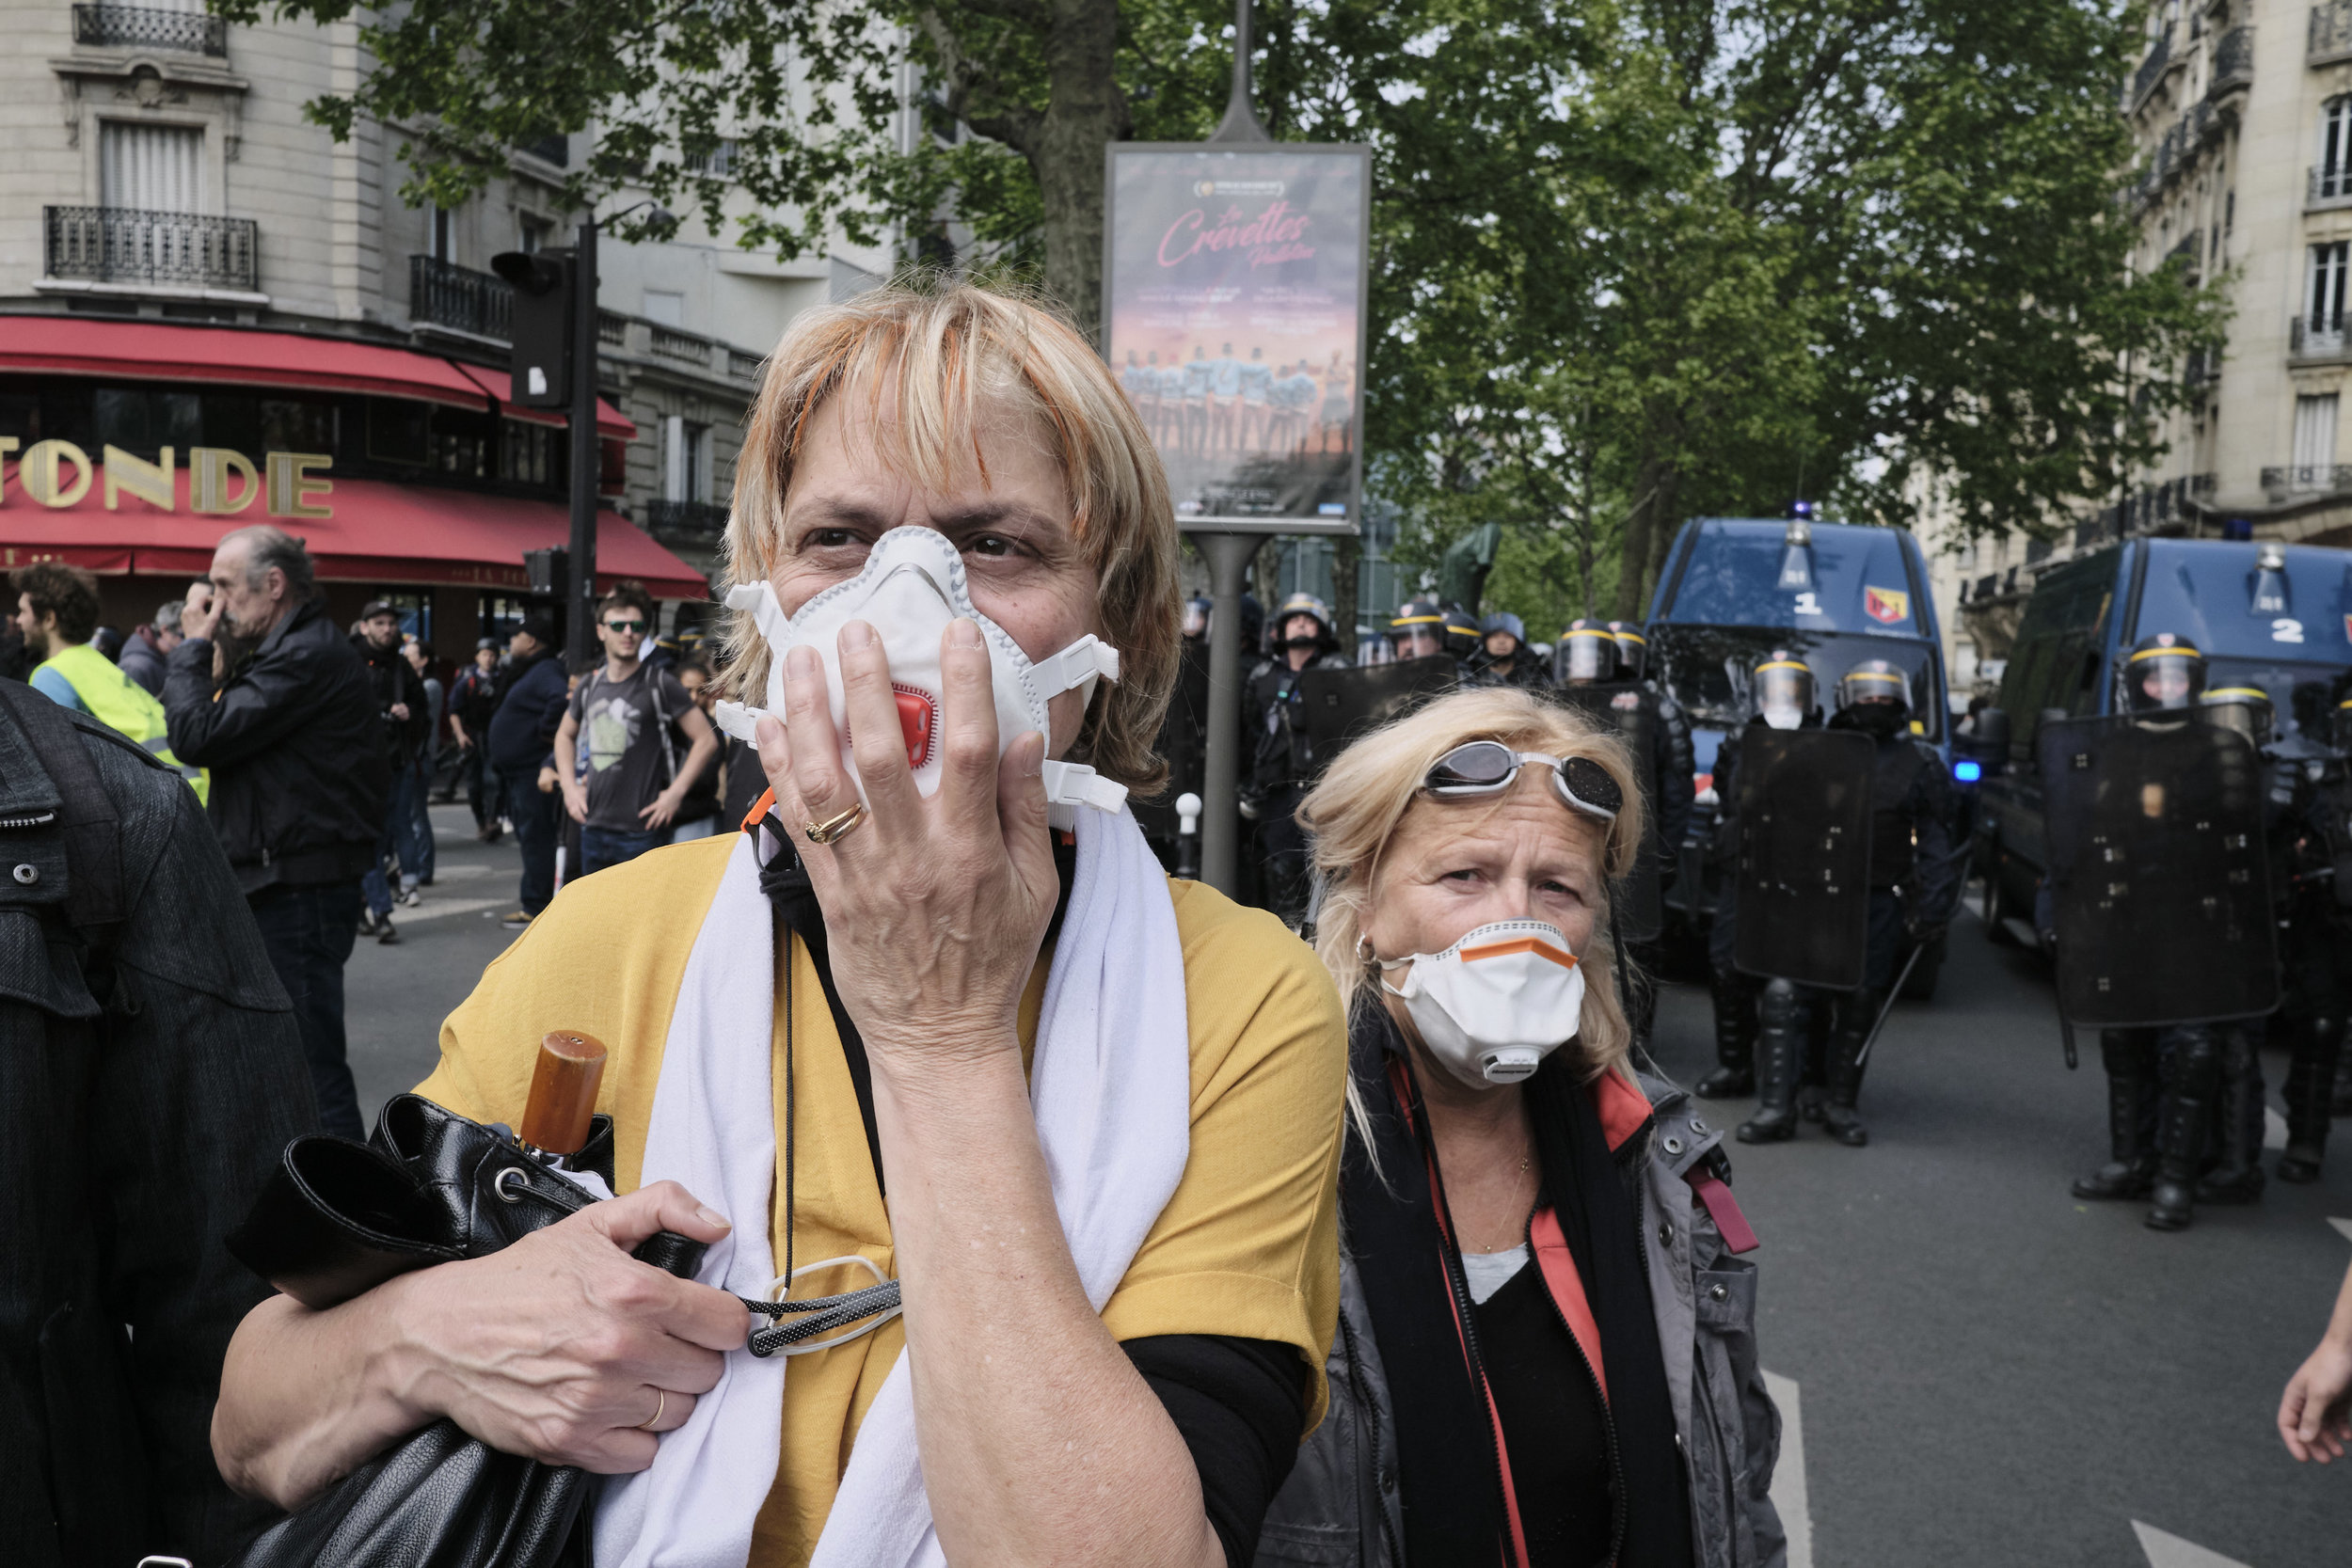 Protest participants trying to get away from the tear gas fired by the police in attempt to control the crowds at Boulevard du Montparnasse.